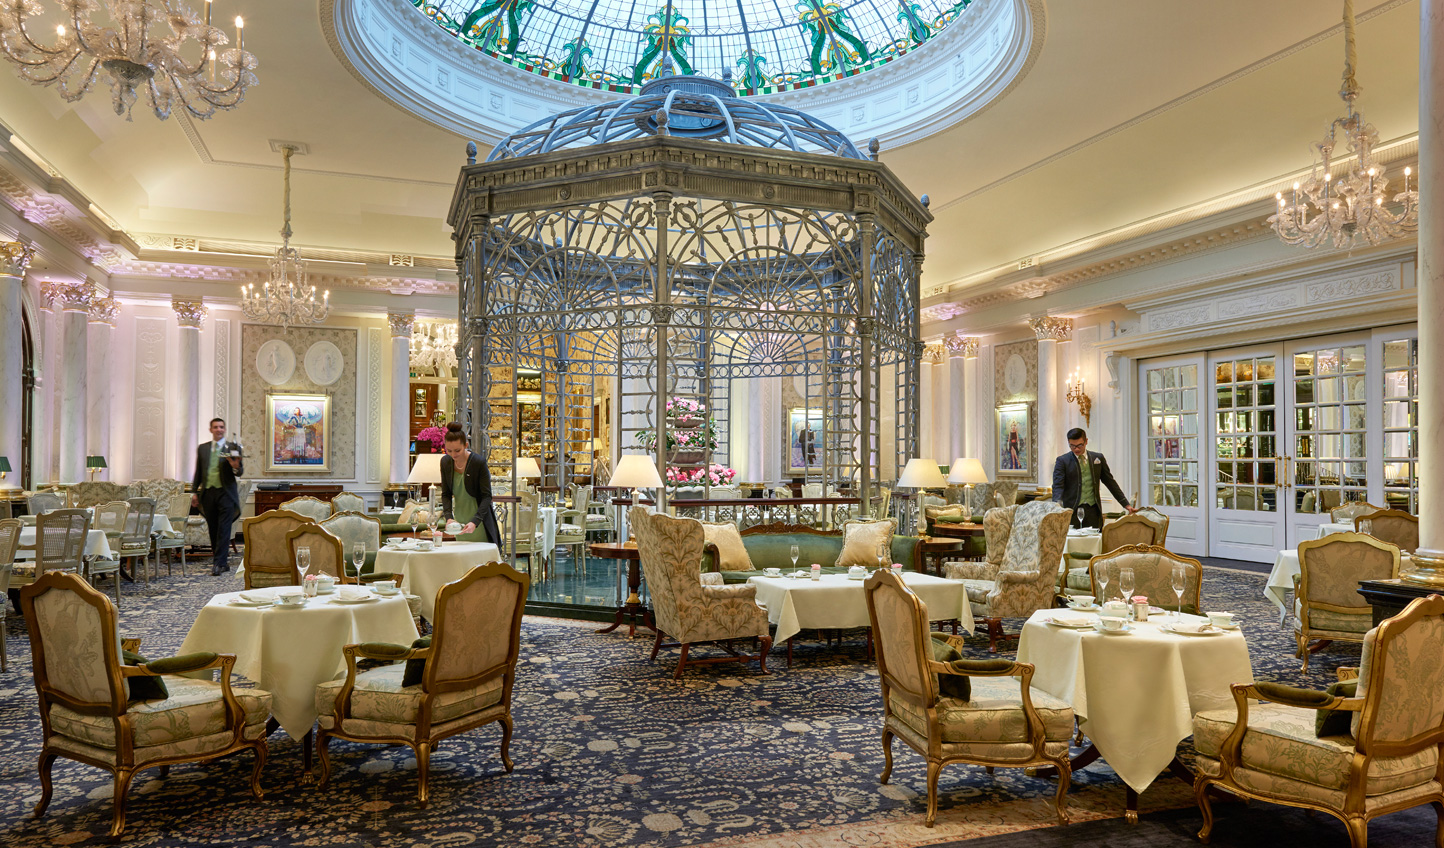 iconic hotels, luxury, hotel iconic hotels Iconic Hotels Around the World: The Savoy, London savoy london2